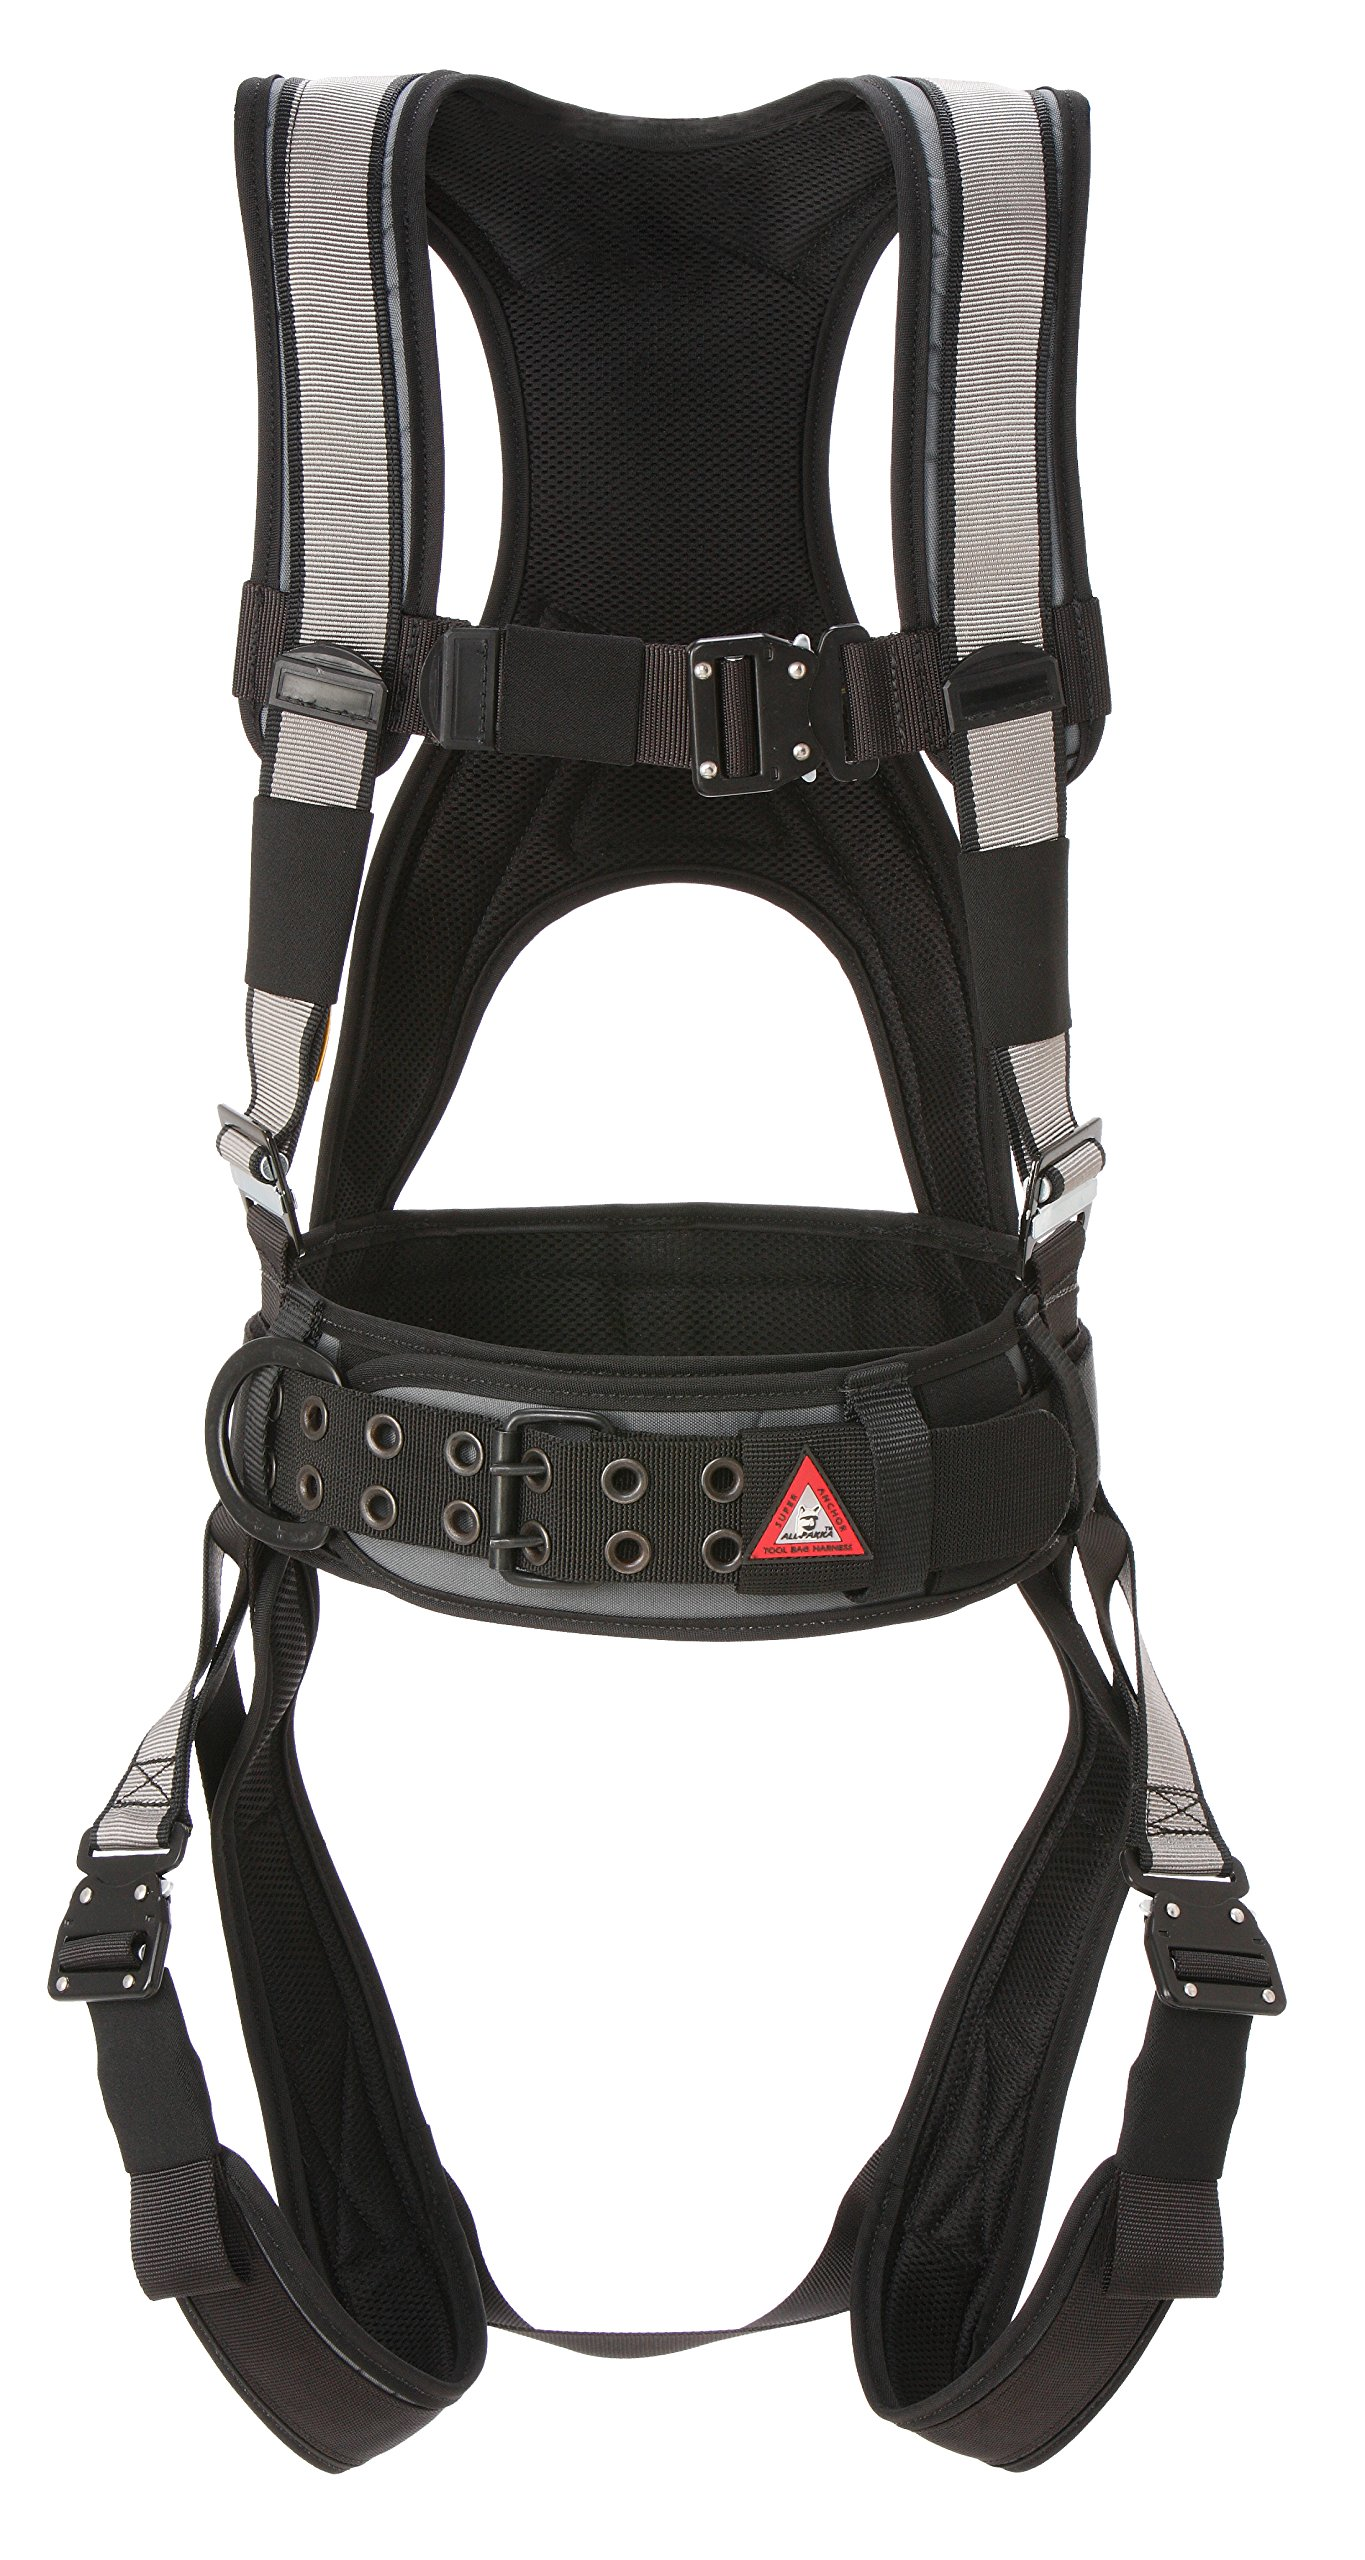 Super Anchor Safety 6101-SM Deluxe Full Body Harness, Medium, Silver